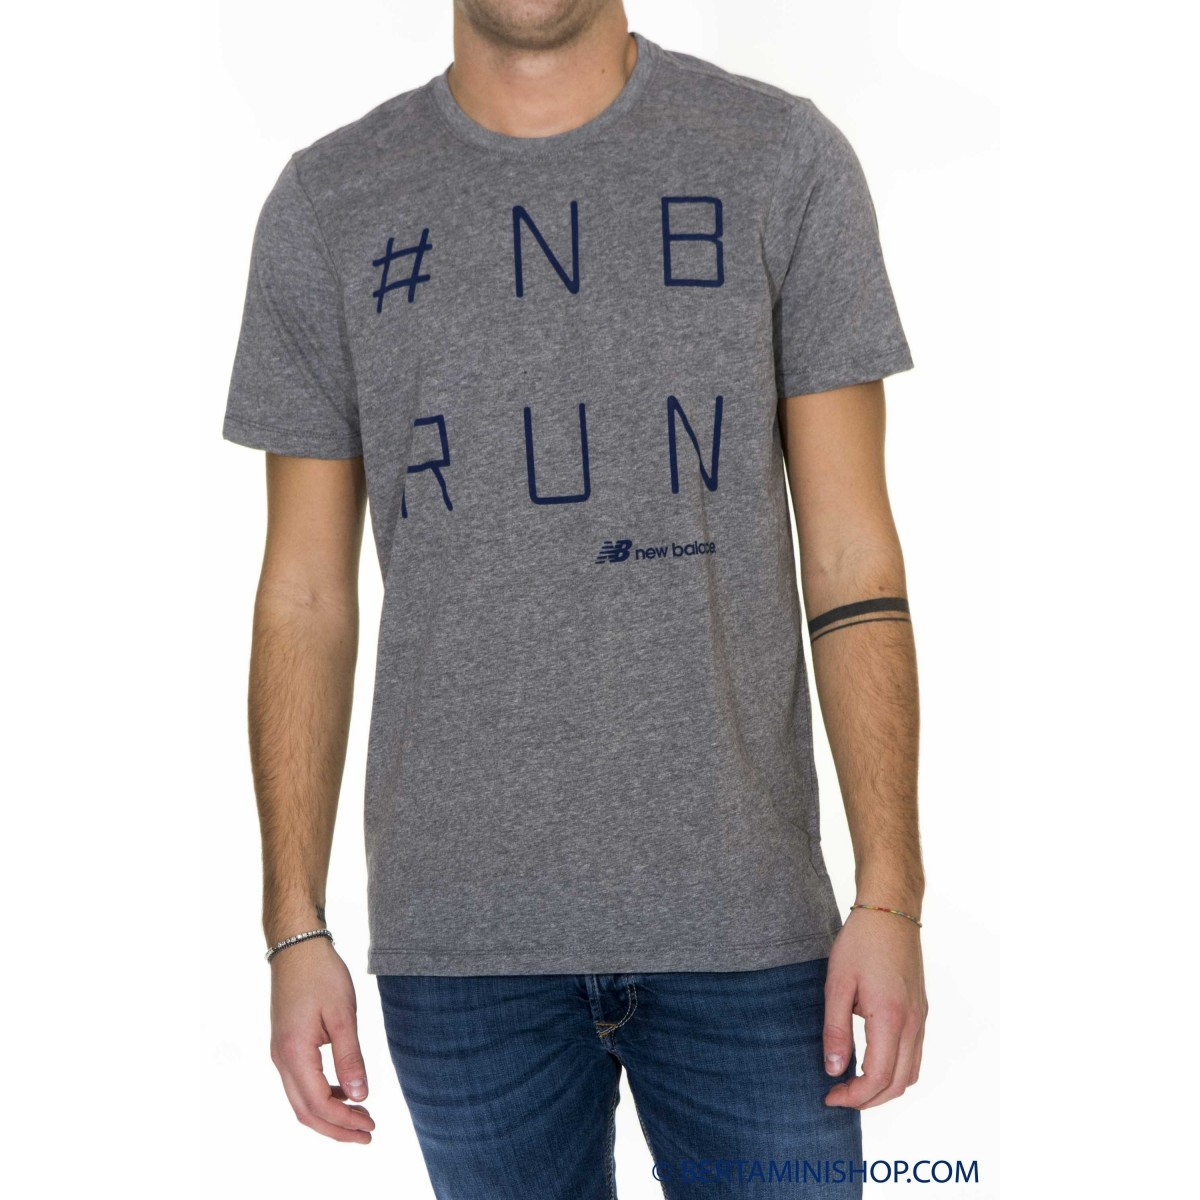 T-Shirt New Balance Man - 16S103 T-Shirt